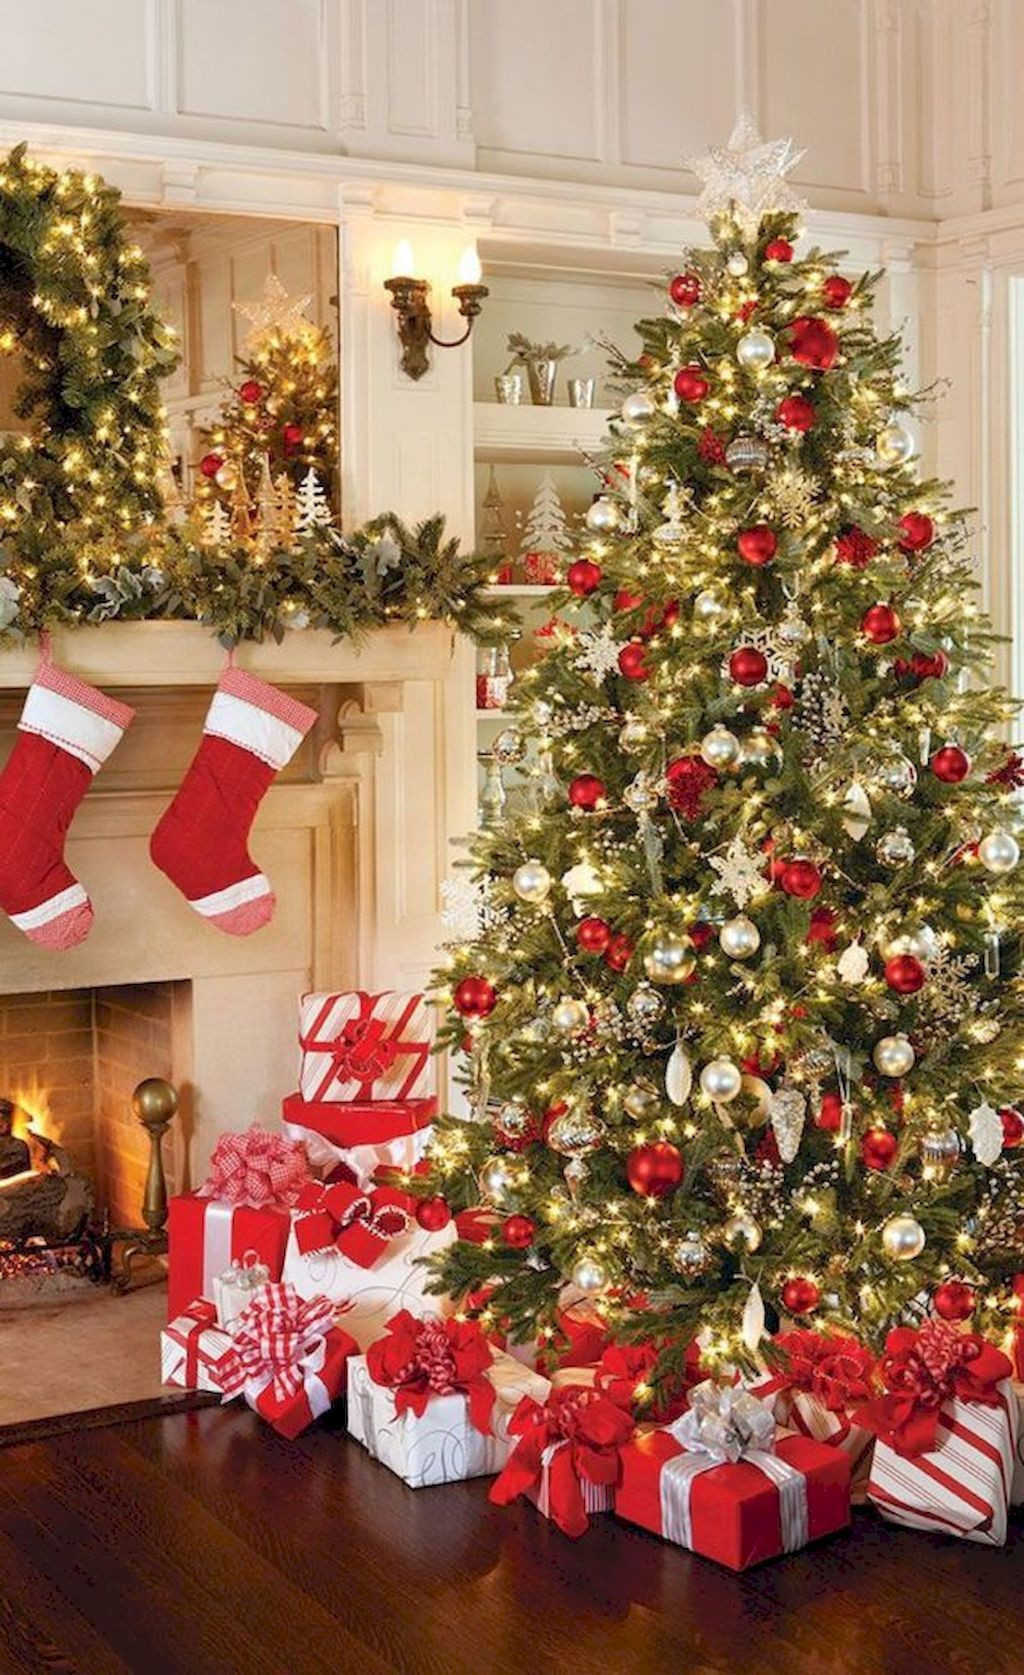 Christmas Trees and Decors